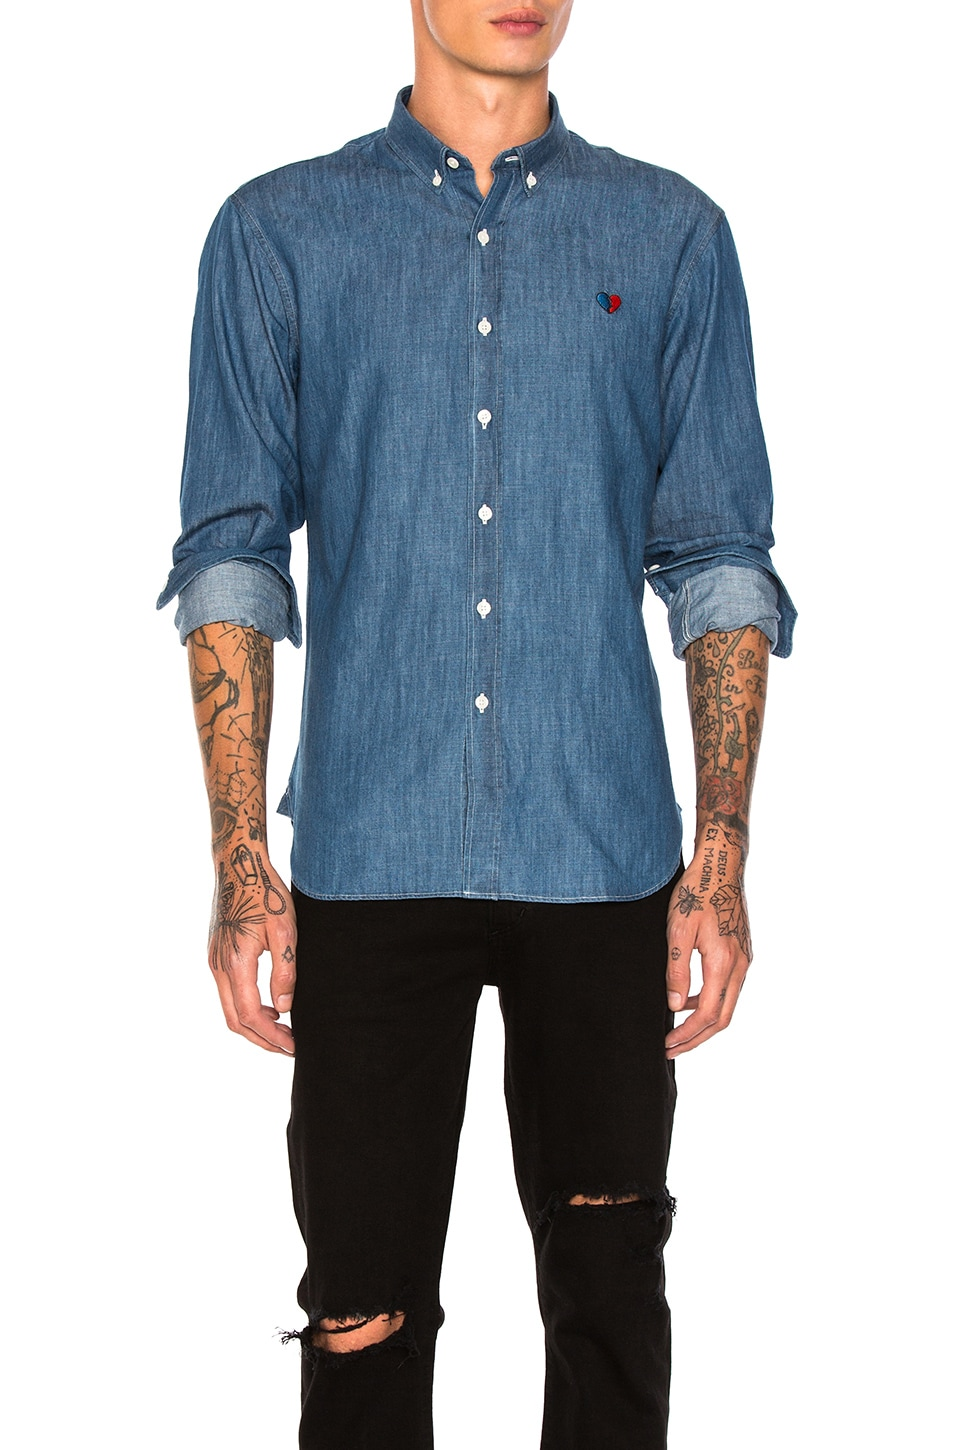 Coeur Brise Button Down by Maison Labiche